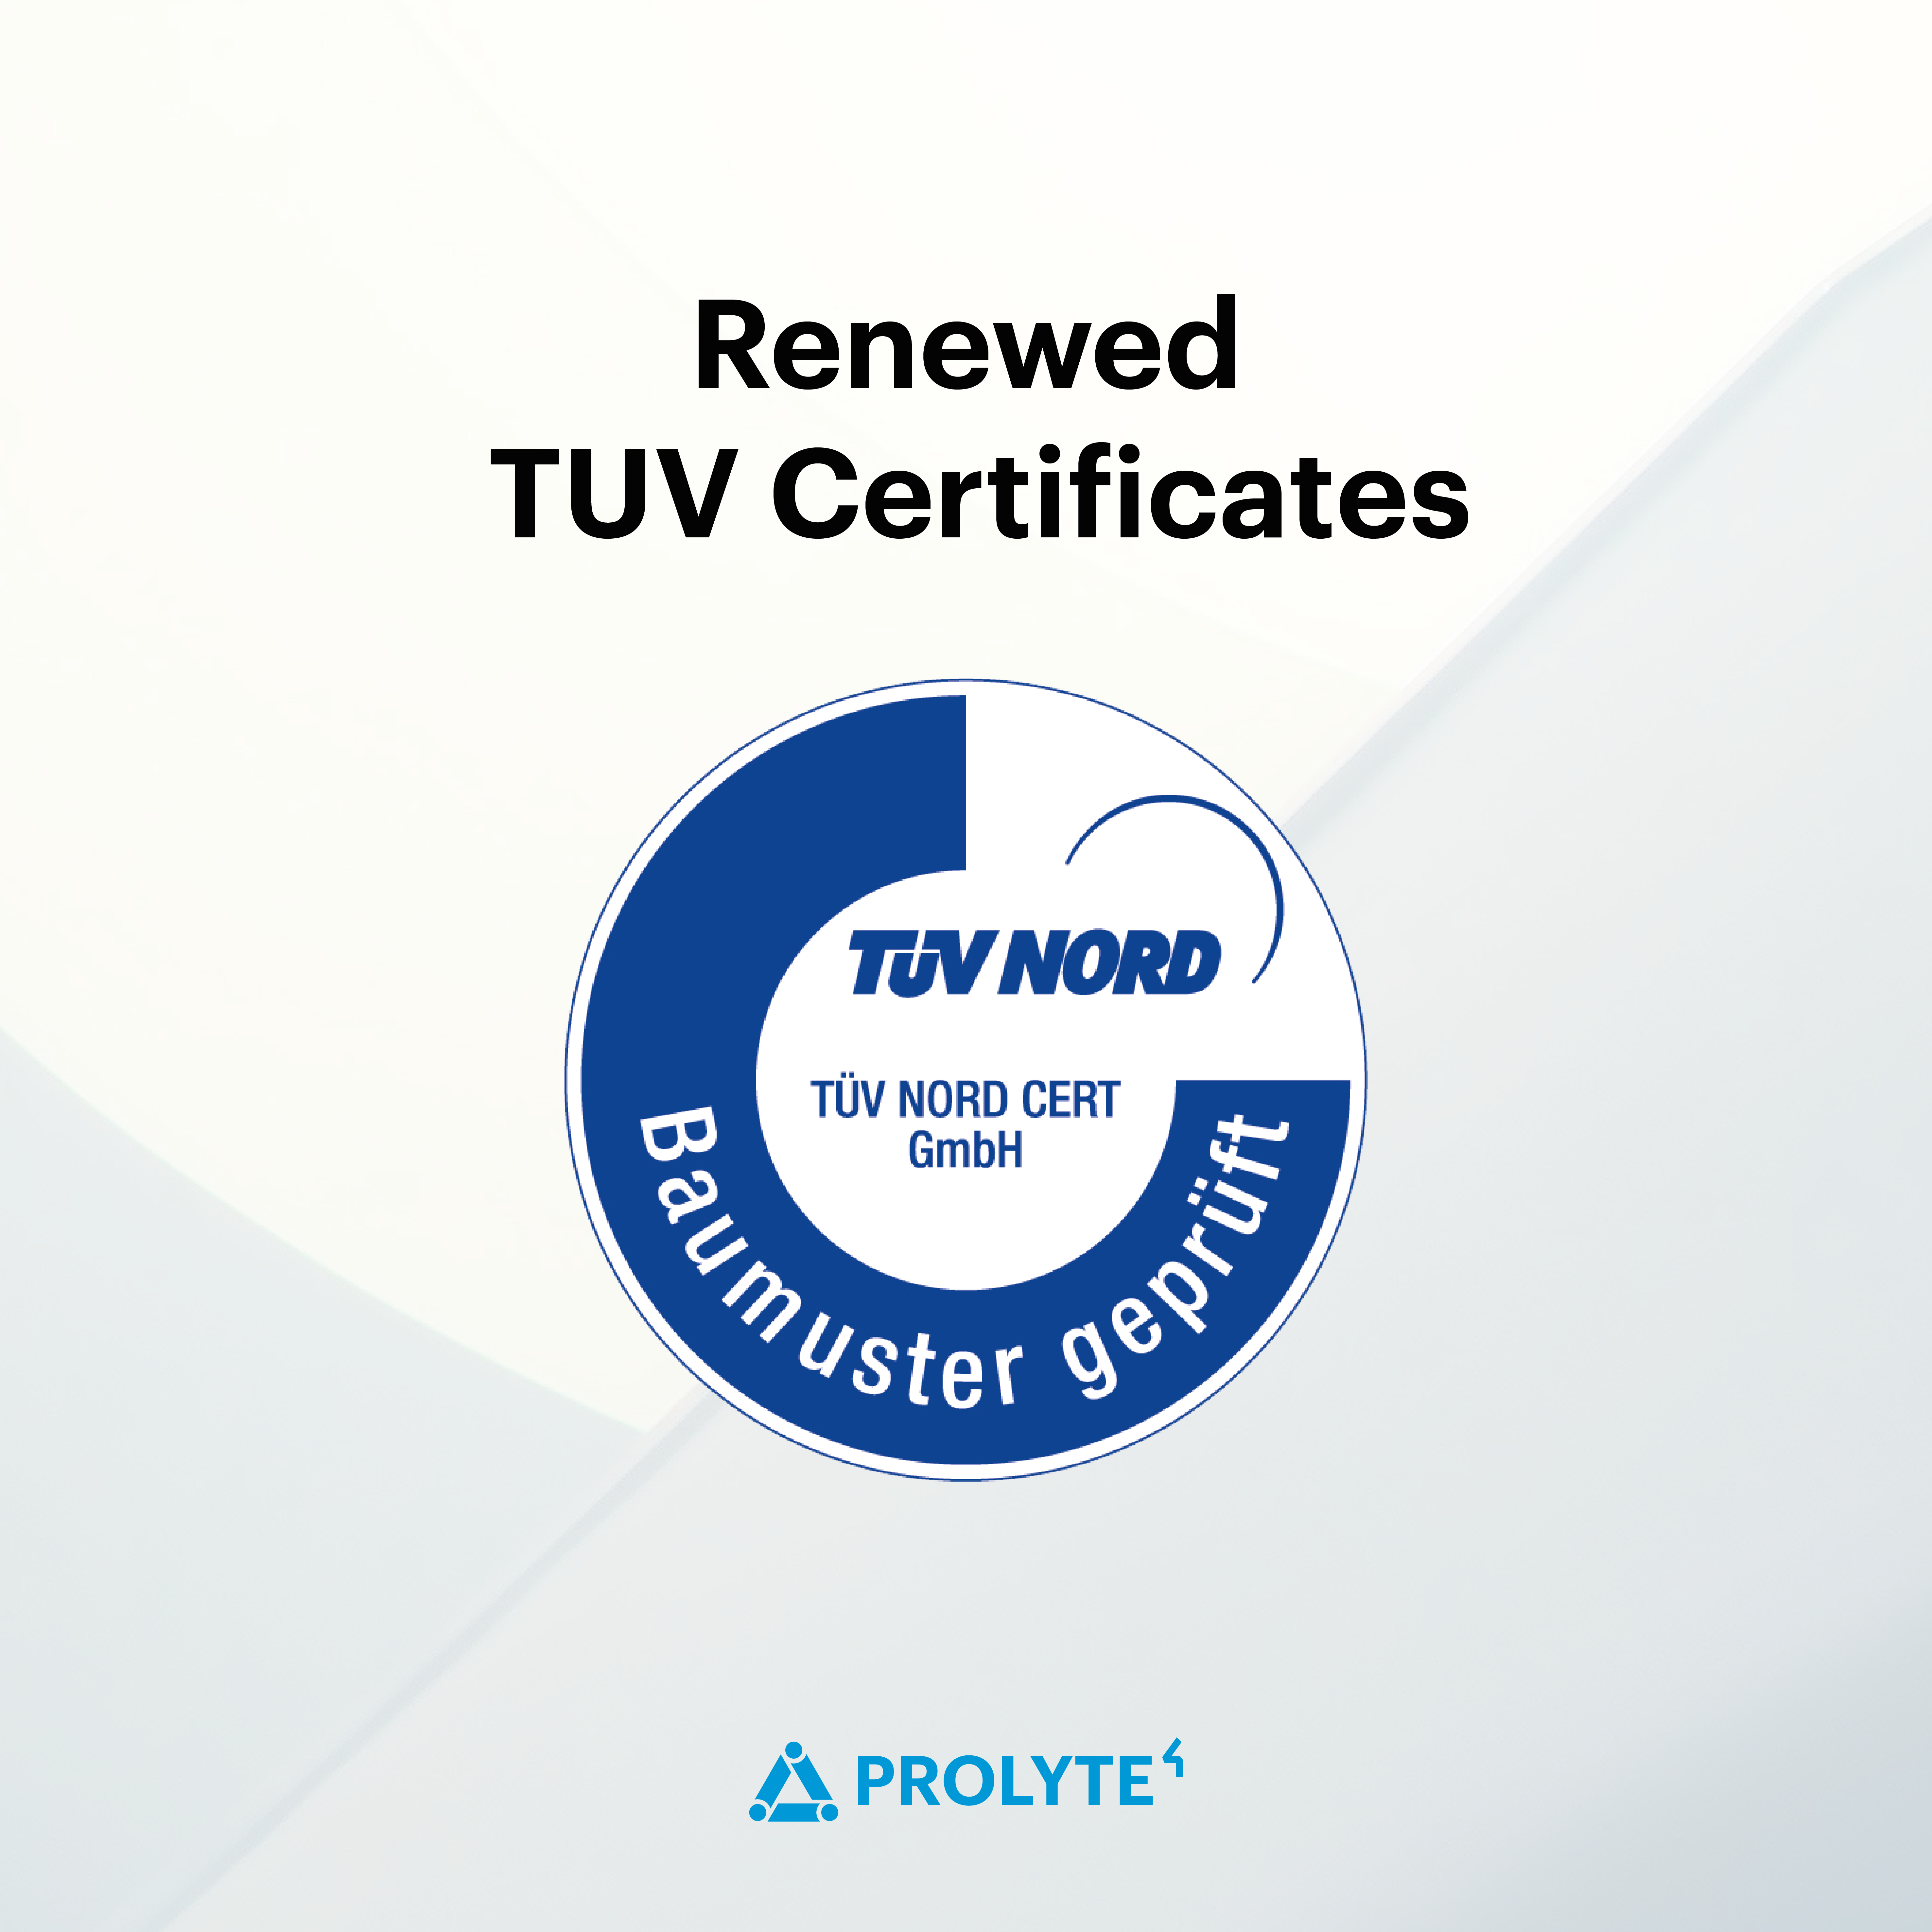 Prolyte Renews TUV Certificates